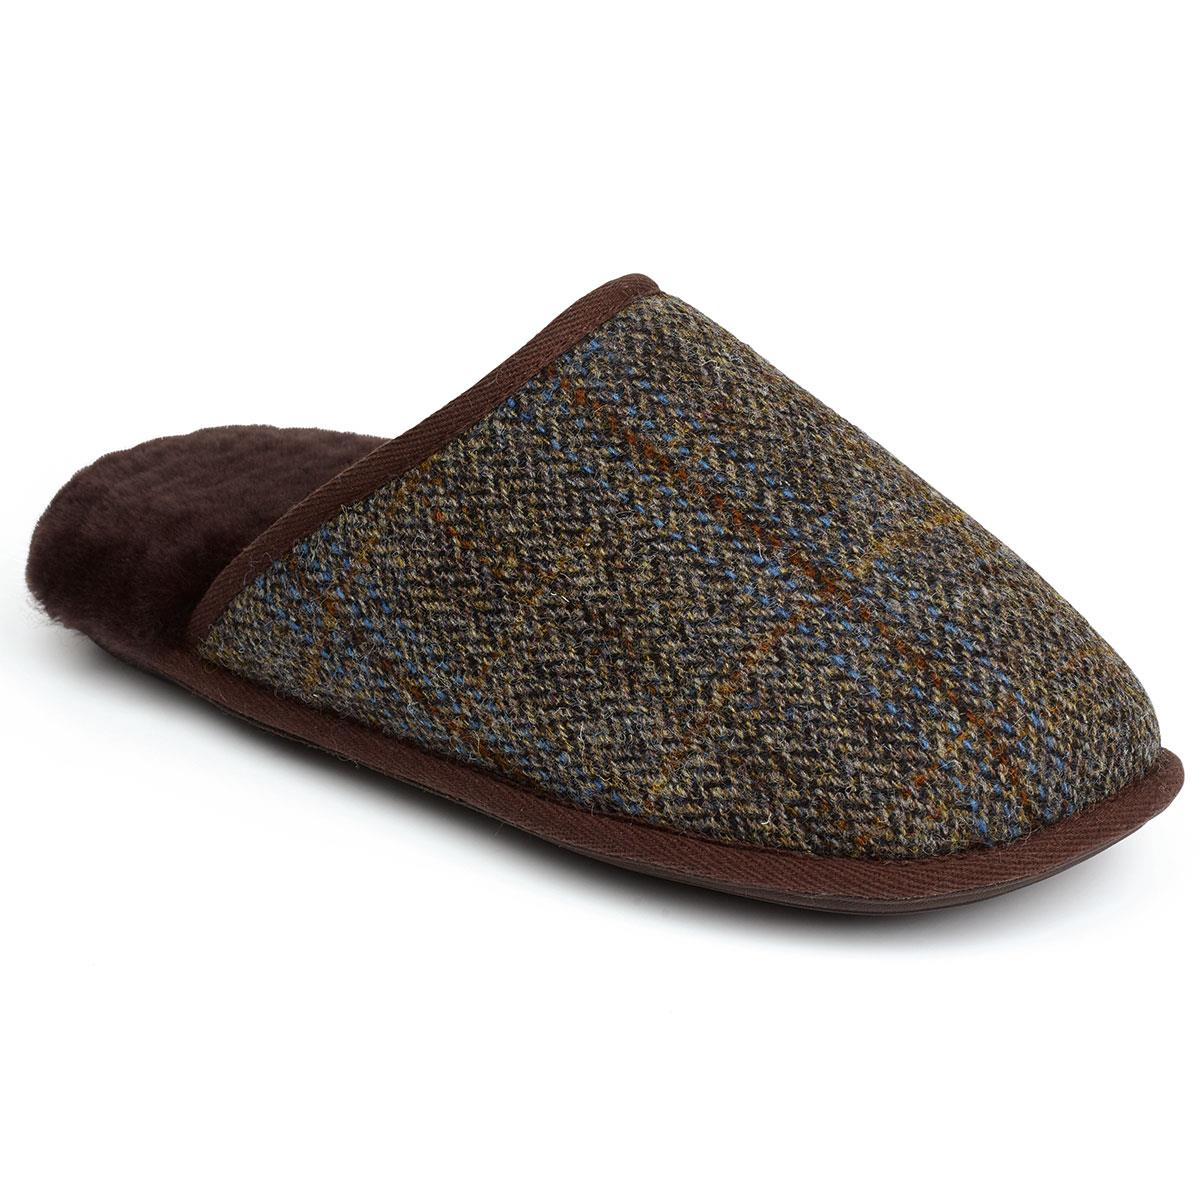 4f146c2ccde5 Mens Russell Tweed Sheepskin Slippers